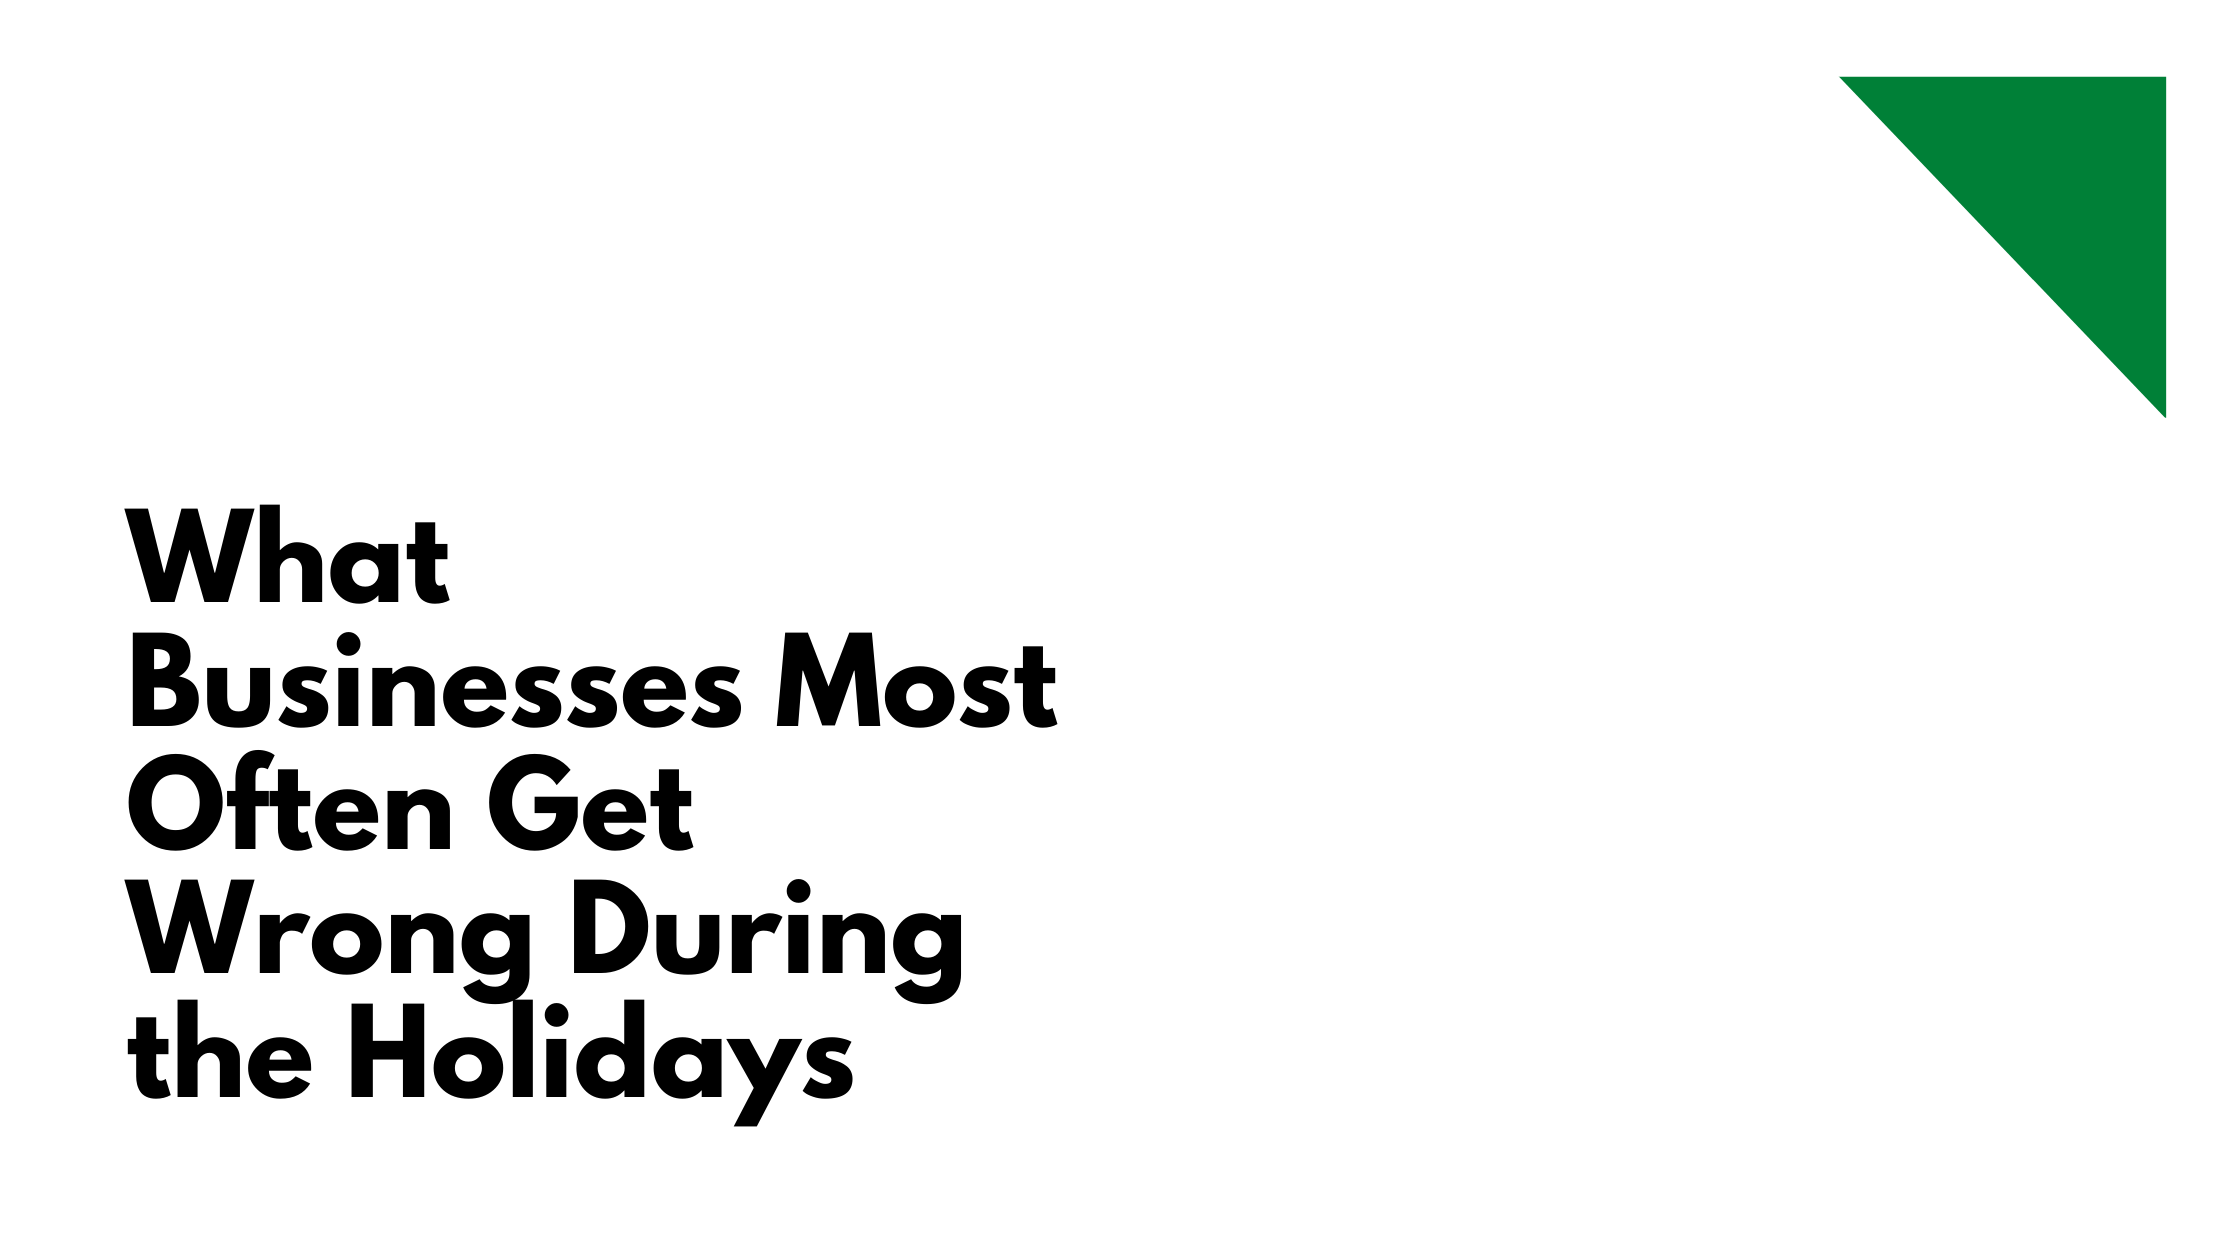 What Businesses Most Often Get Wrong During the Holidays